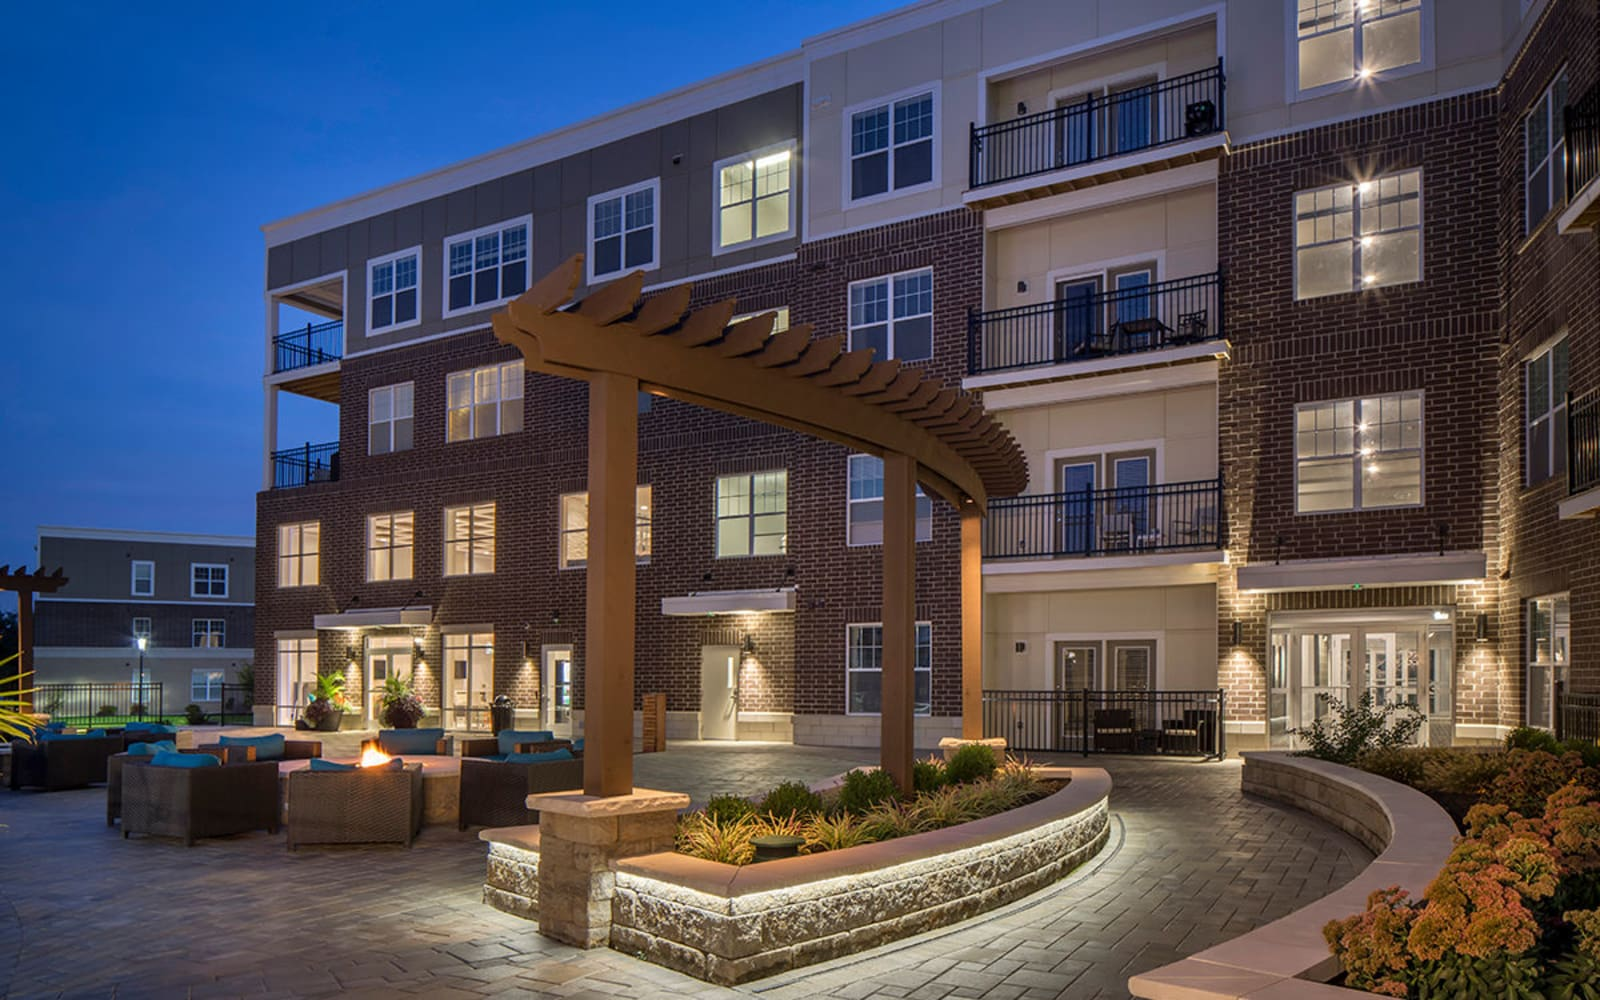 Outdoor patio with fire pit at Allure Apartments in Centerville, Ohio